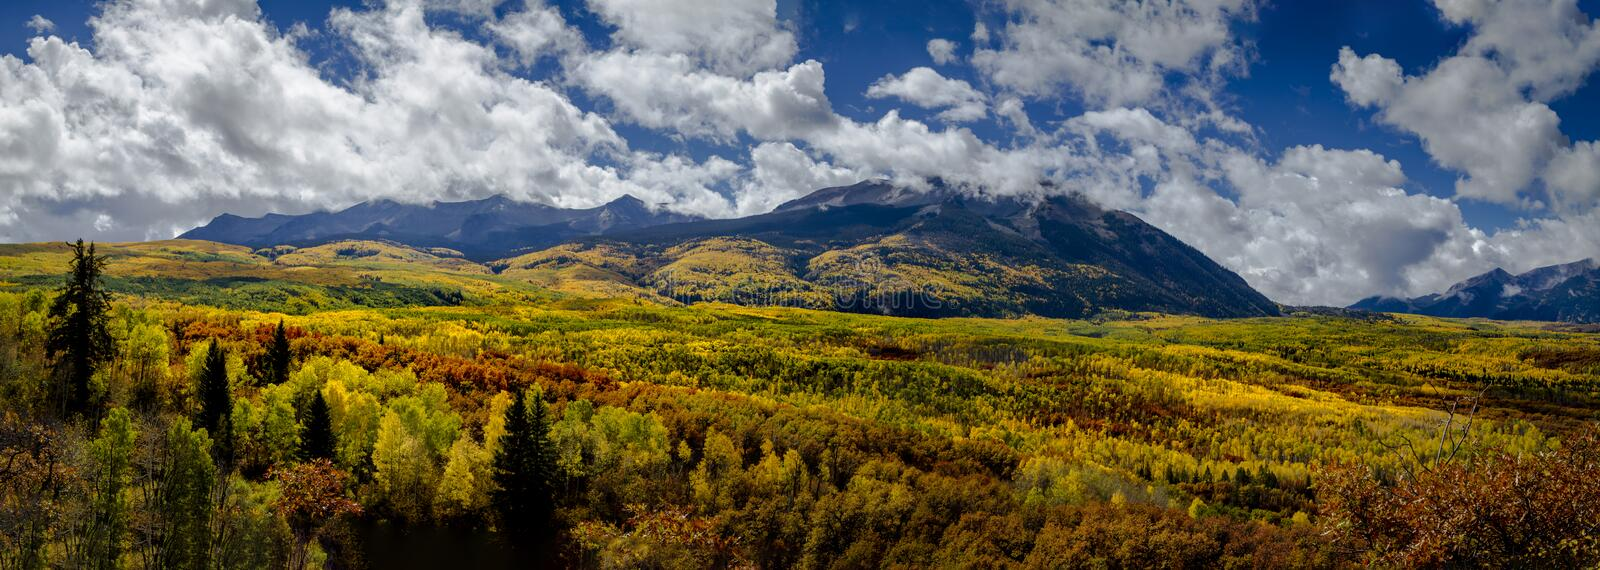 Autumn Color in San Juan und Rocky Mountains von Colorado lizenzfreie stockfotografie